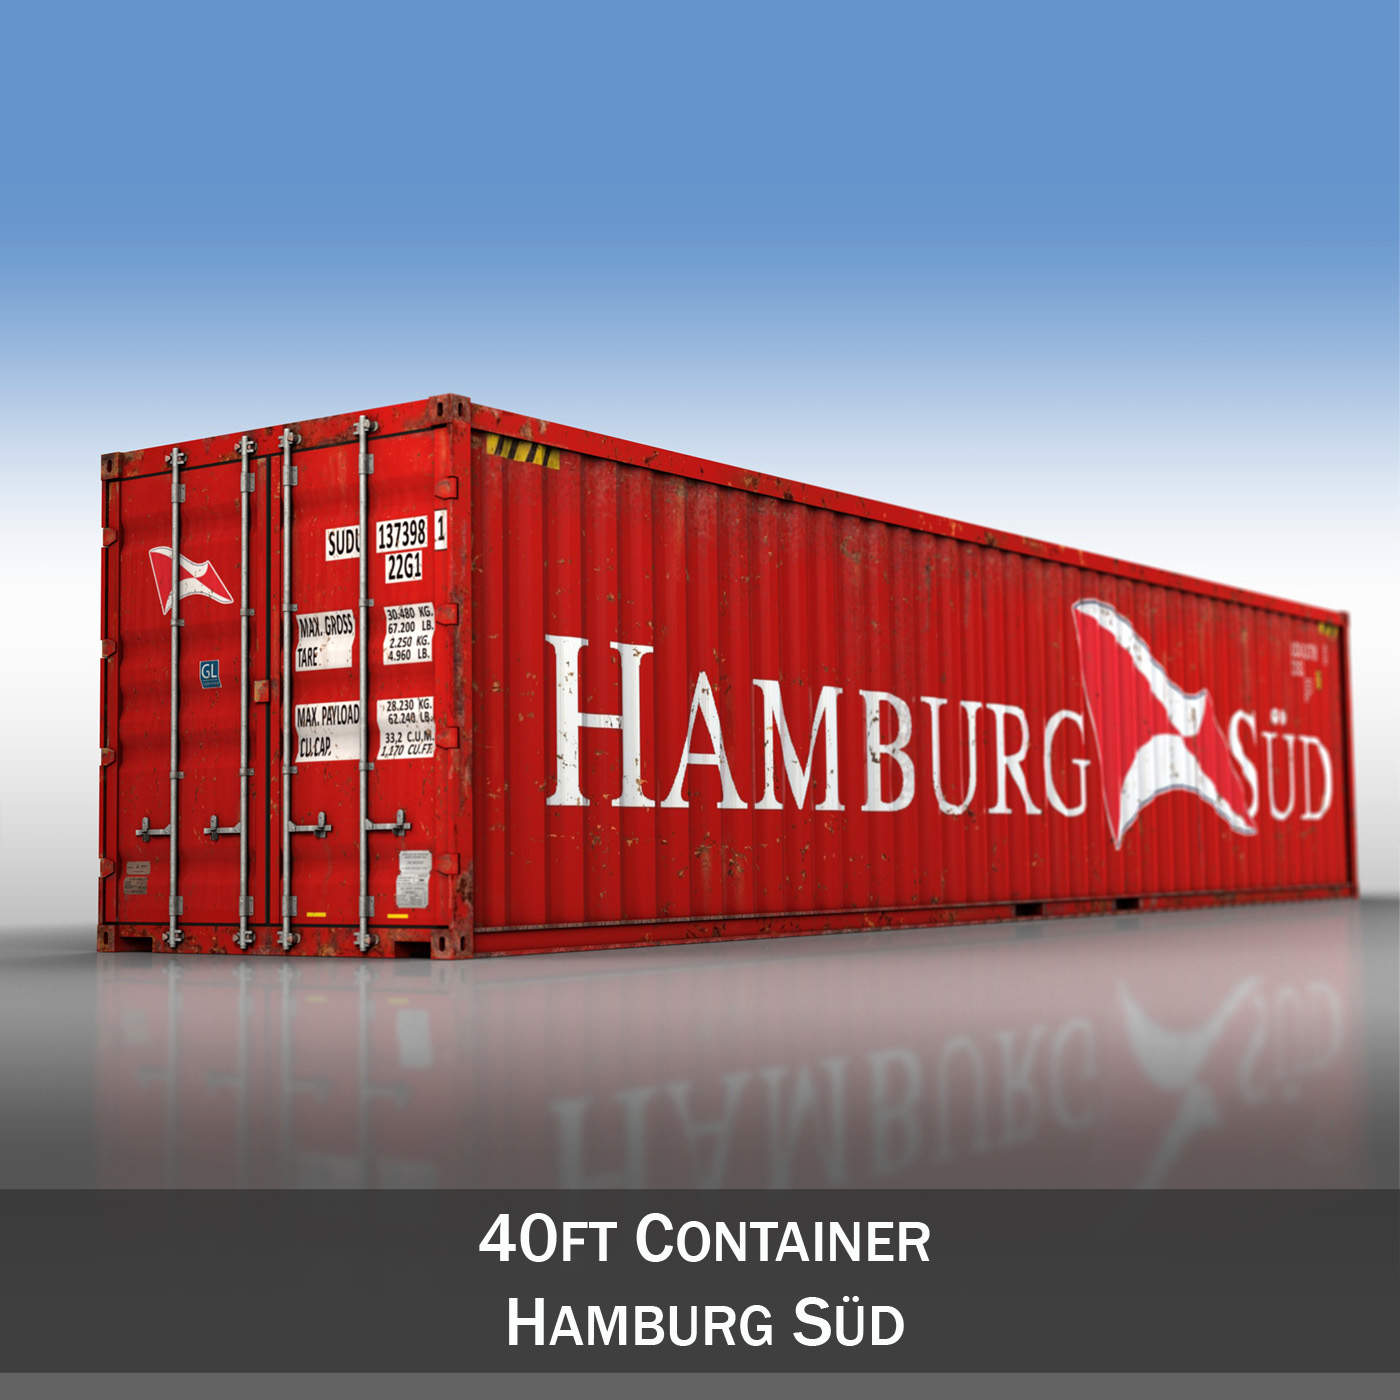 40ft shipping container – hamburg sued 3d model 3ds fbx lwo lw lws obj c4d 264940